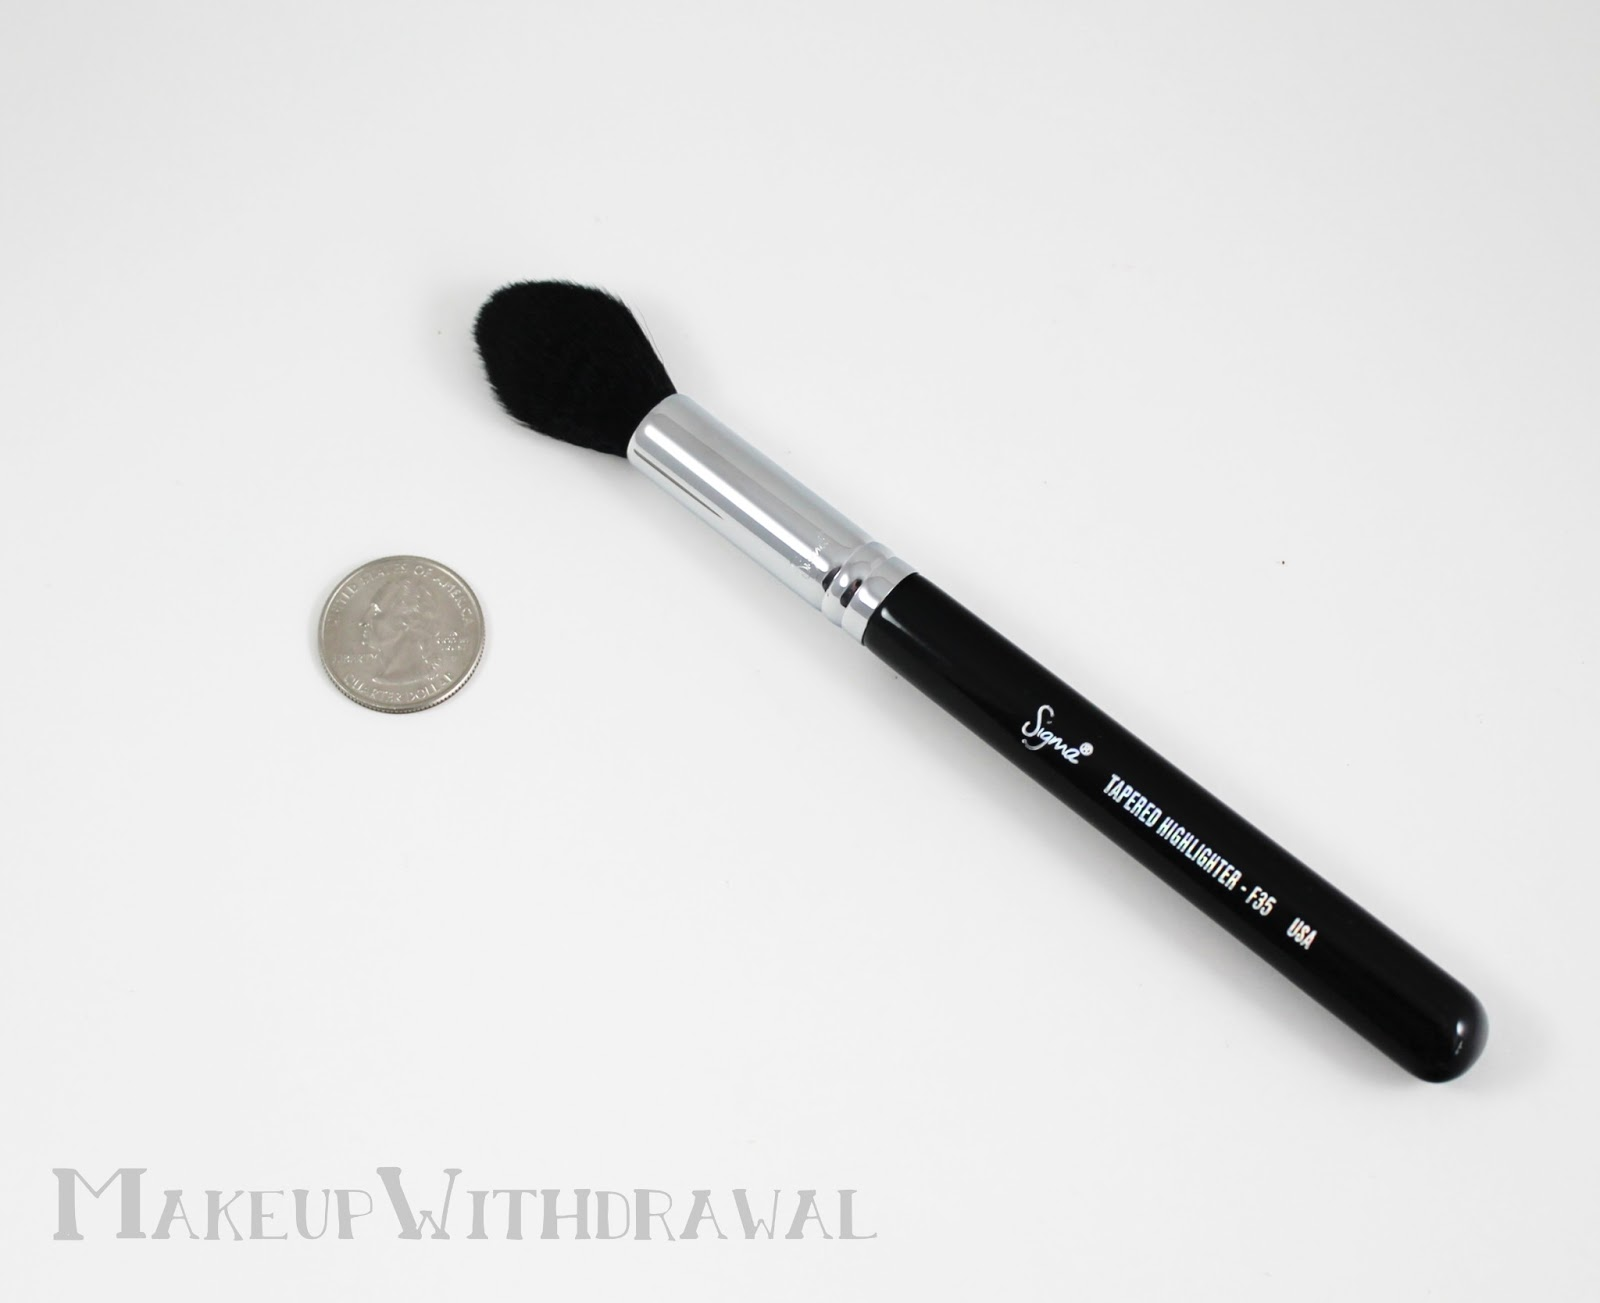 A Tale of Two Sigma Brushes | Makeup Withdrawal